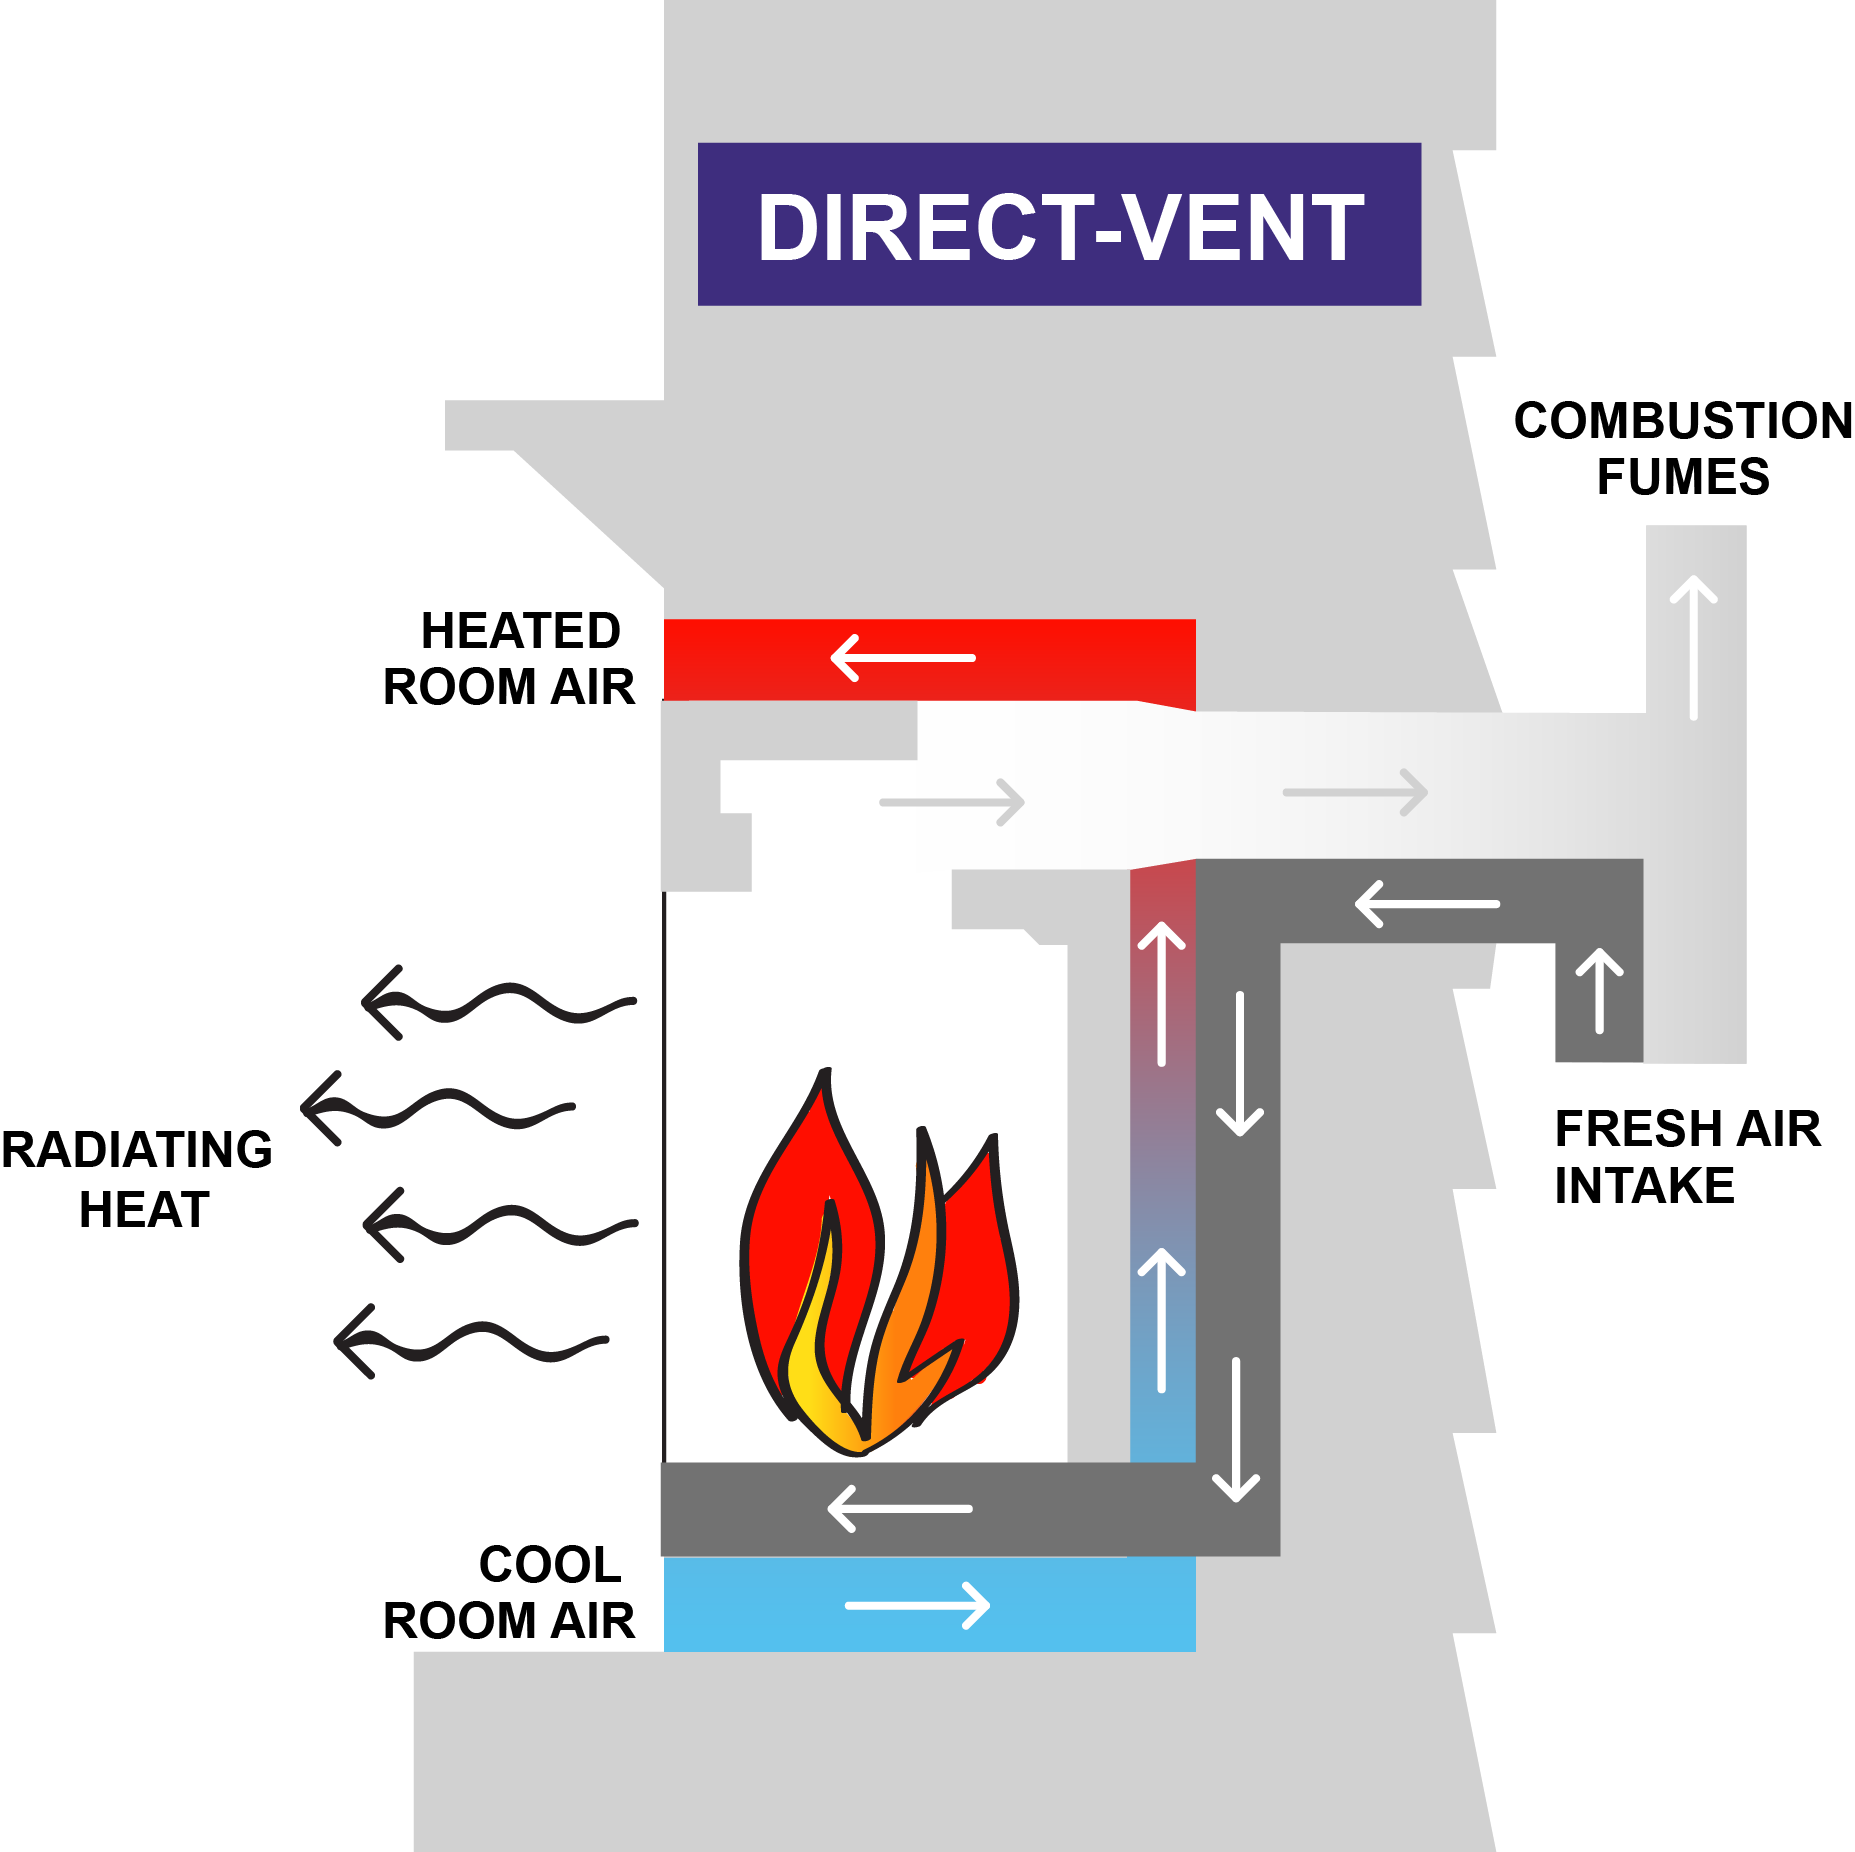 Direct Vent Hearth Products Are The Safest Option For Supplemental Heating Systems Transfer Combustion Fumes And Pollutants Outside